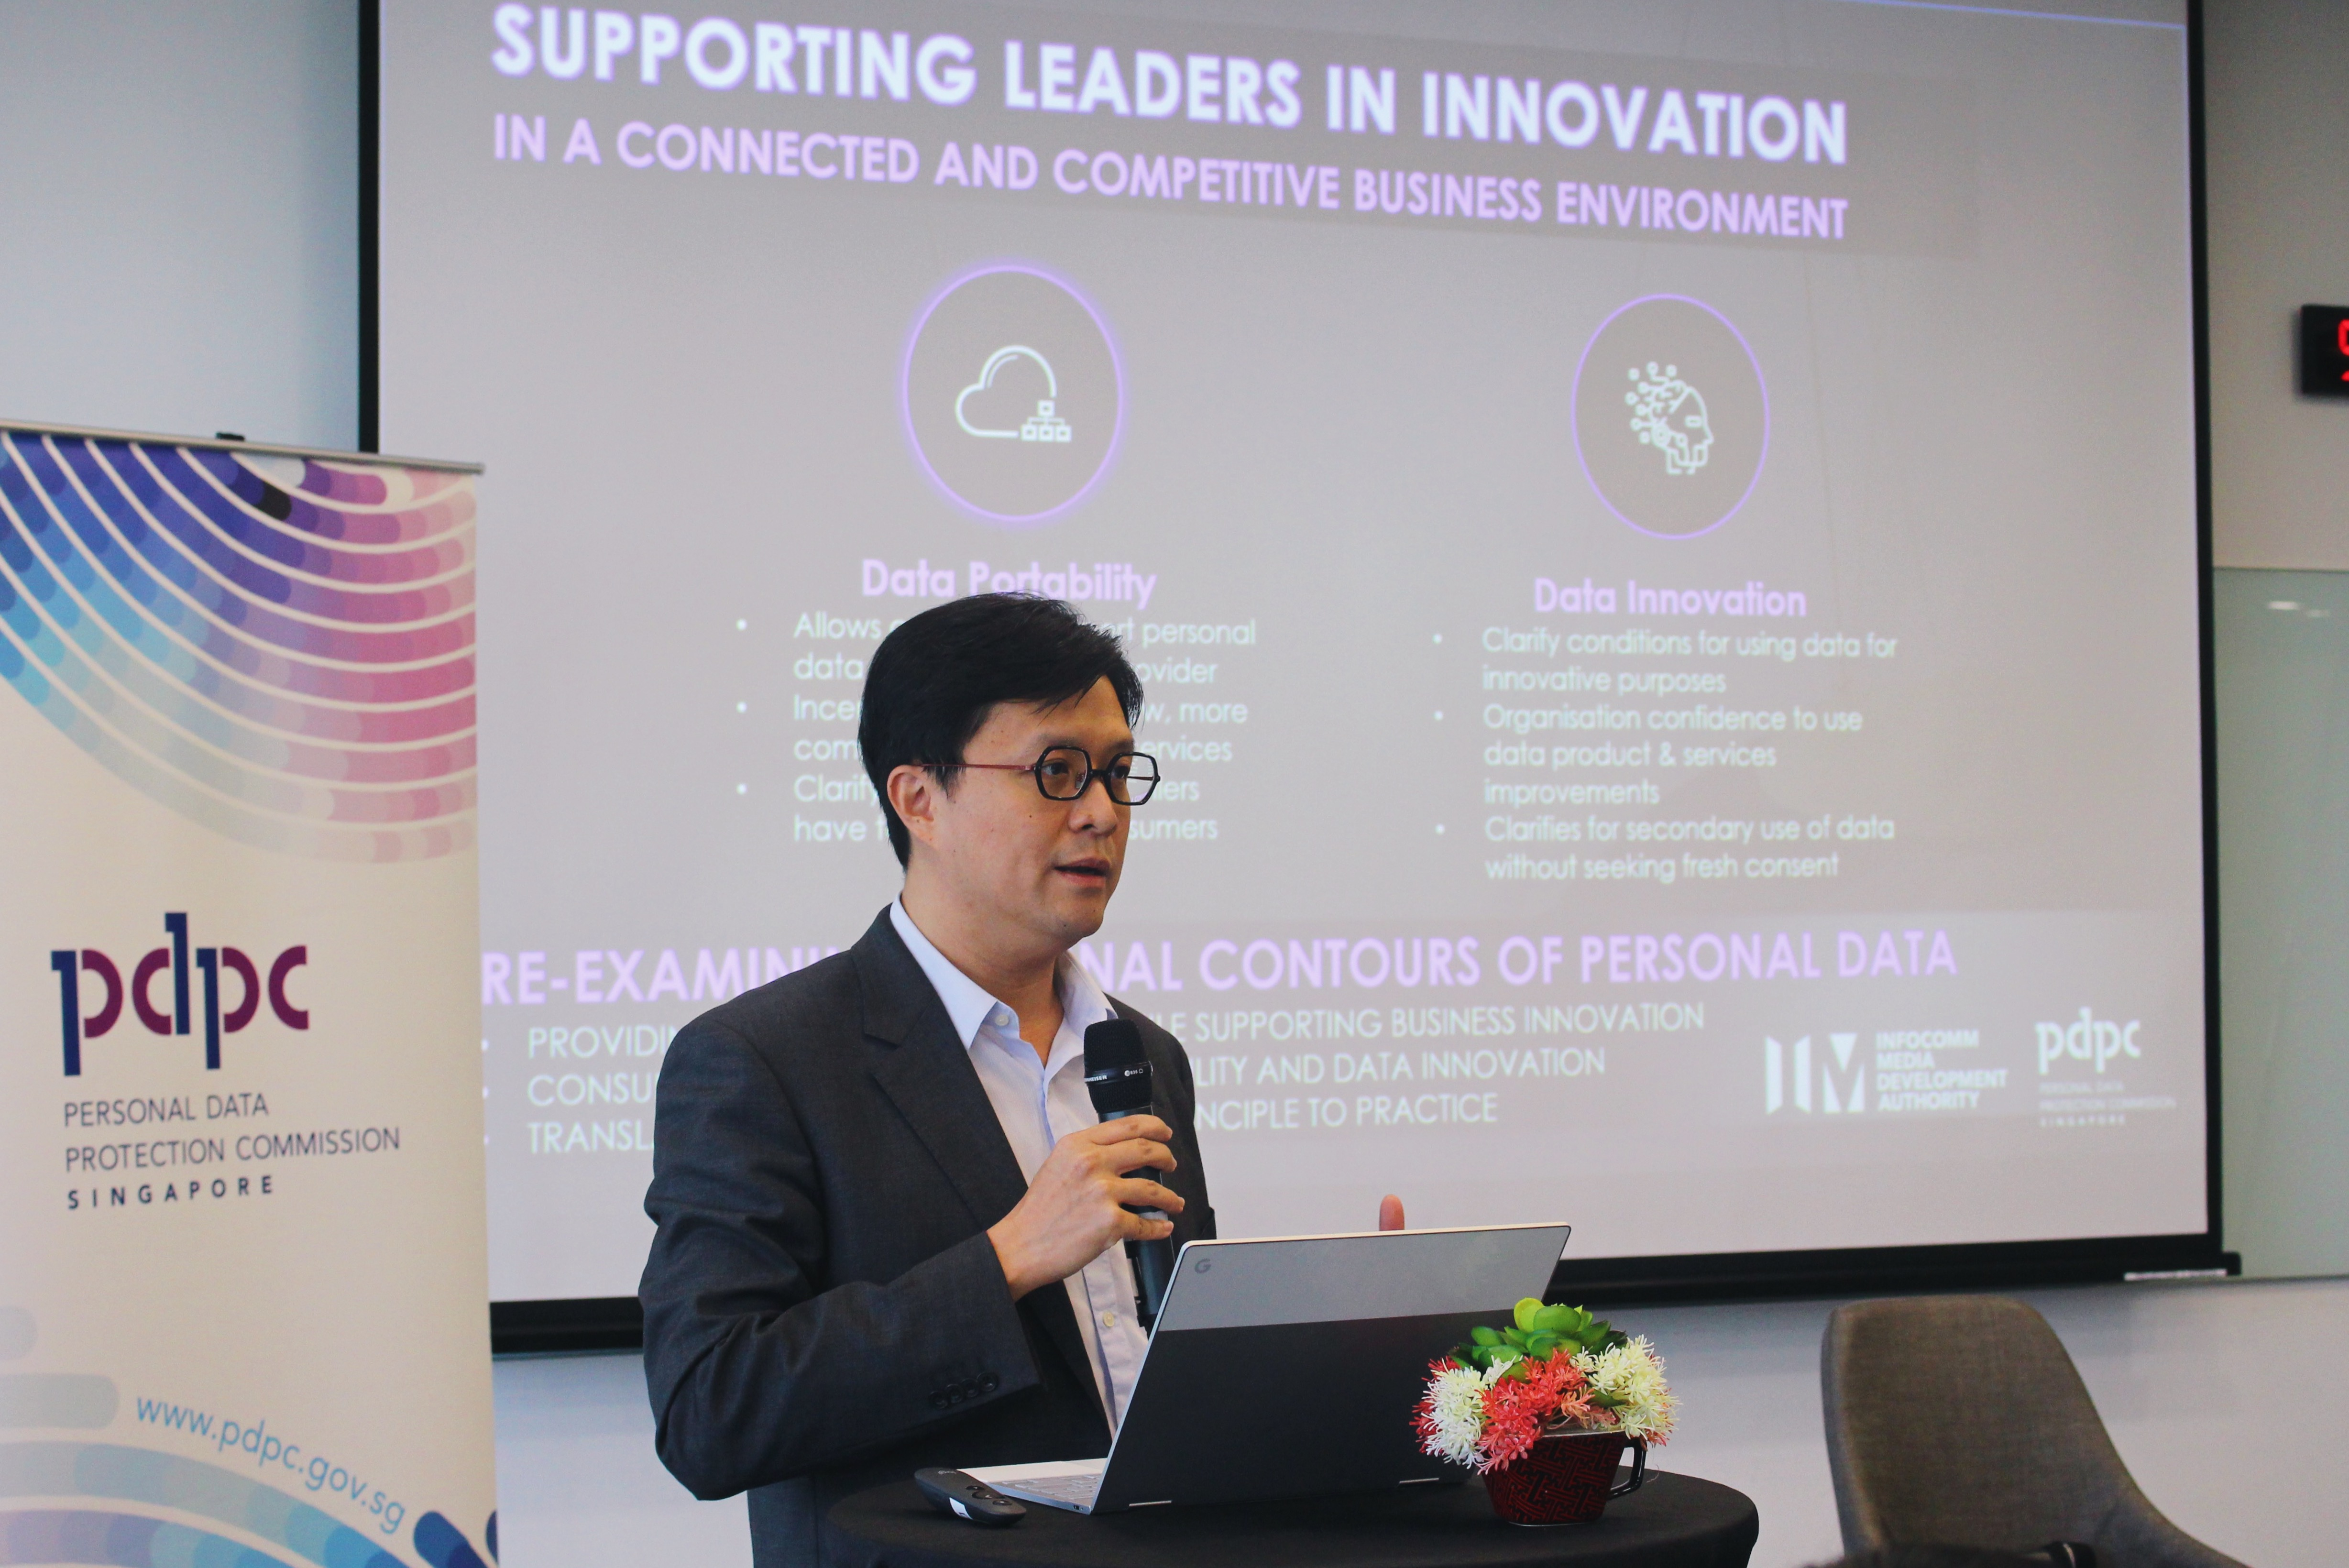 Deputy Commissioner of Personal Data Protection Commission (PDPC), Mr Yeong Zee Kin. Photo courtesy: PDPC